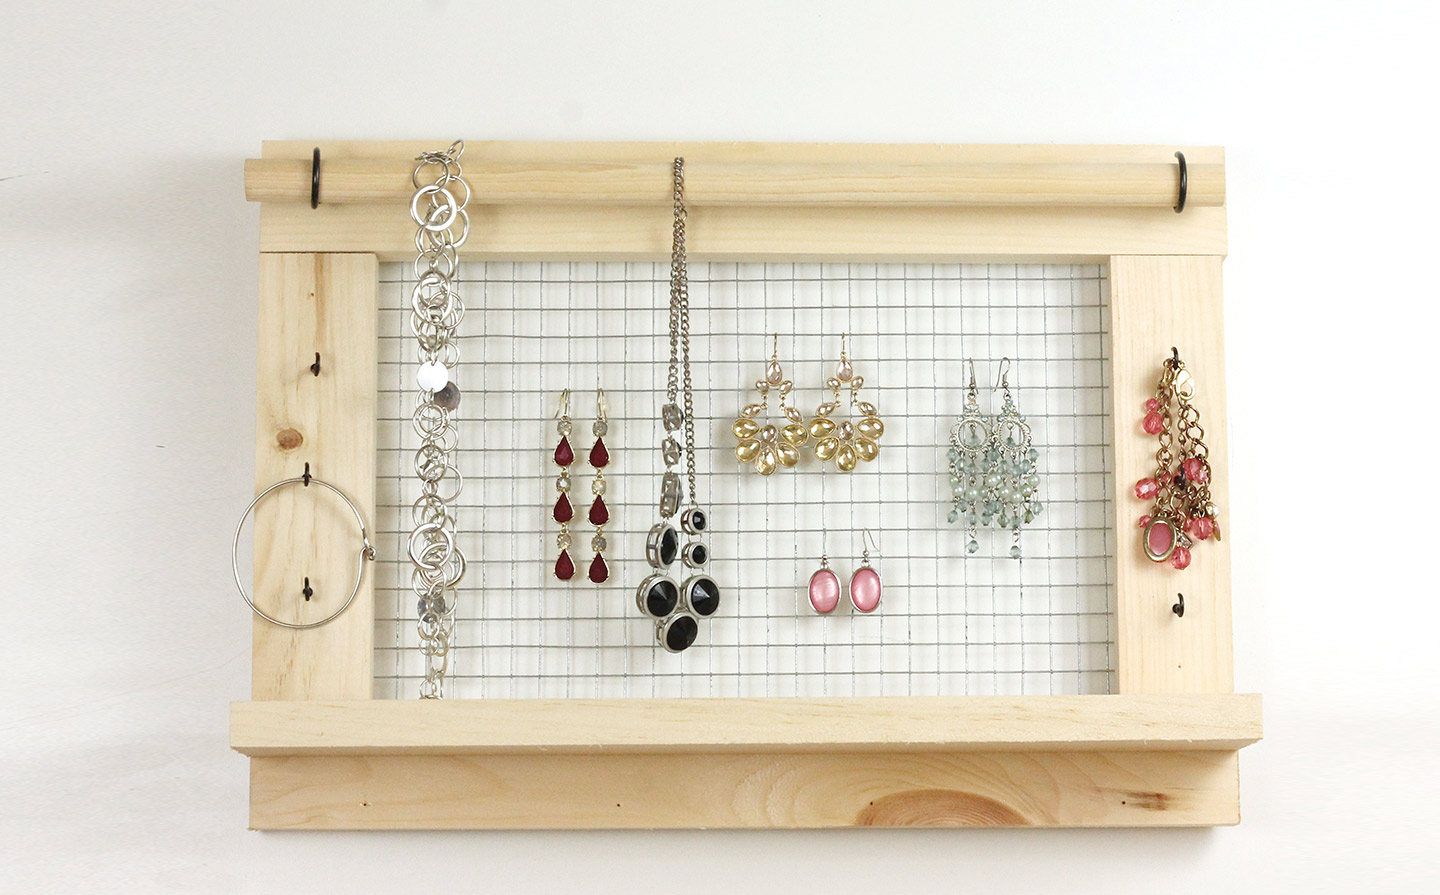 Wall mounted diy jewelry organizer do it herself for Diy travel earring holder